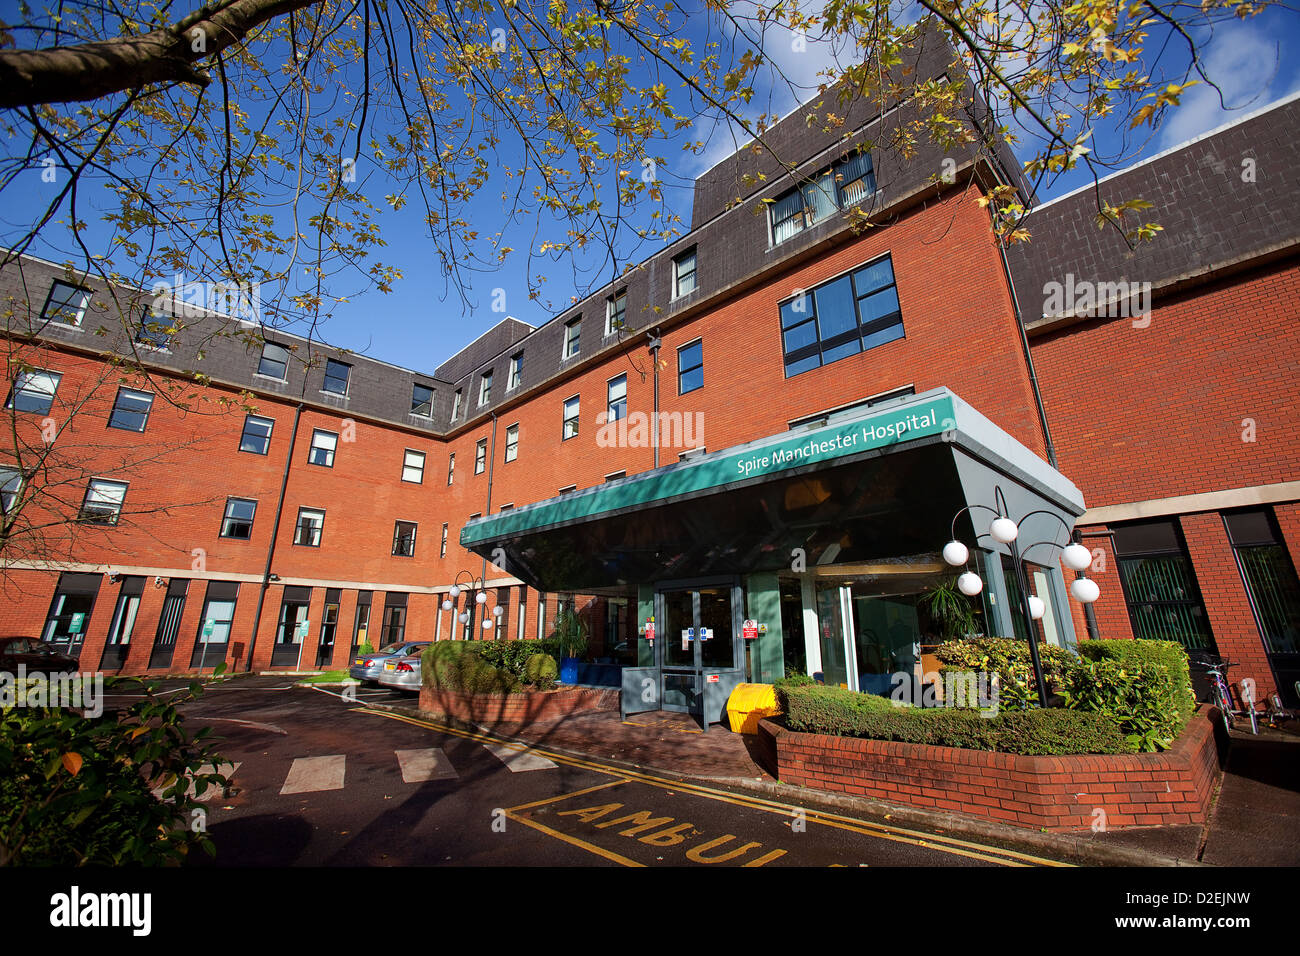 Official opening of Spire Healthcare Whalley Range Manchester Pictured exterial of the hospital entrance - Stock Image